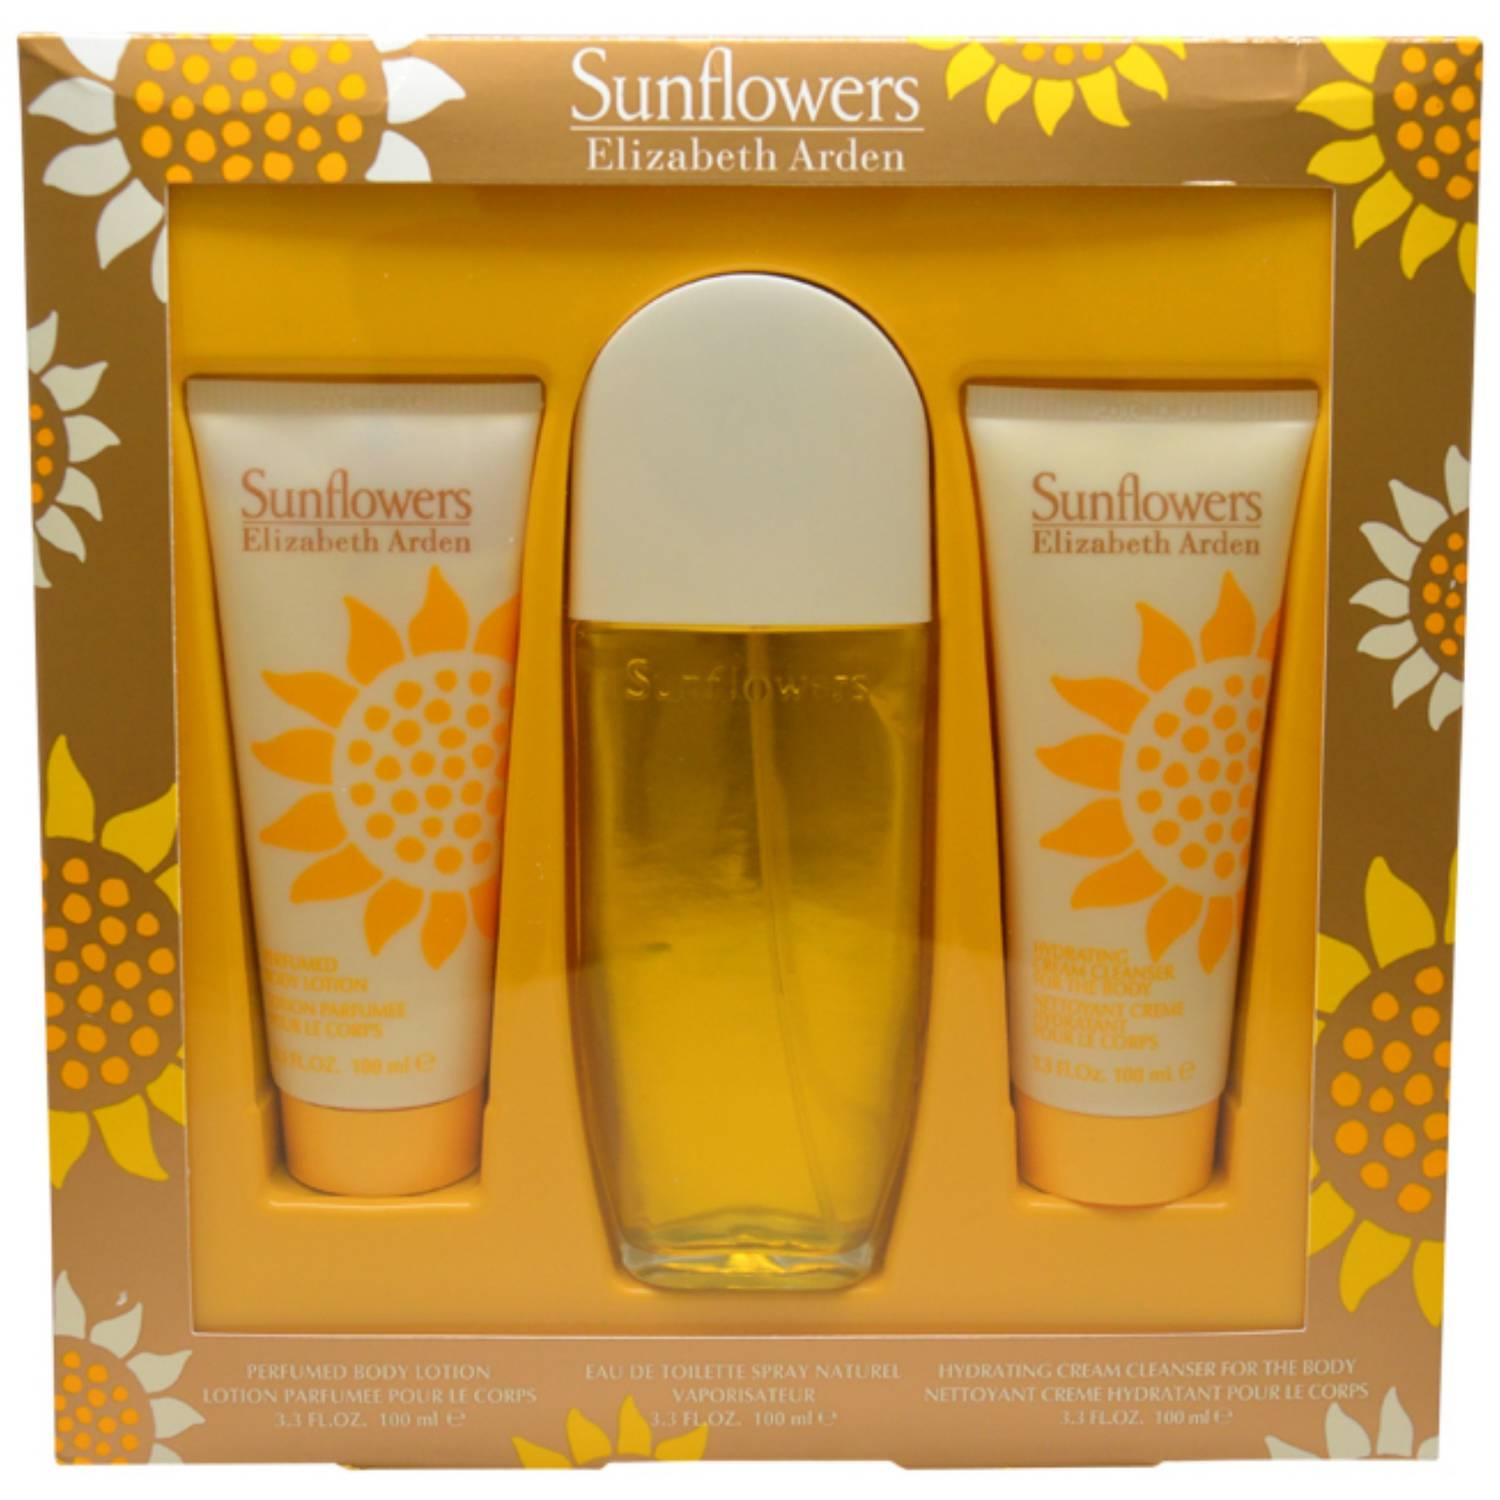 Elizabeth Arden Sunflowers Gift Set, 3 pc